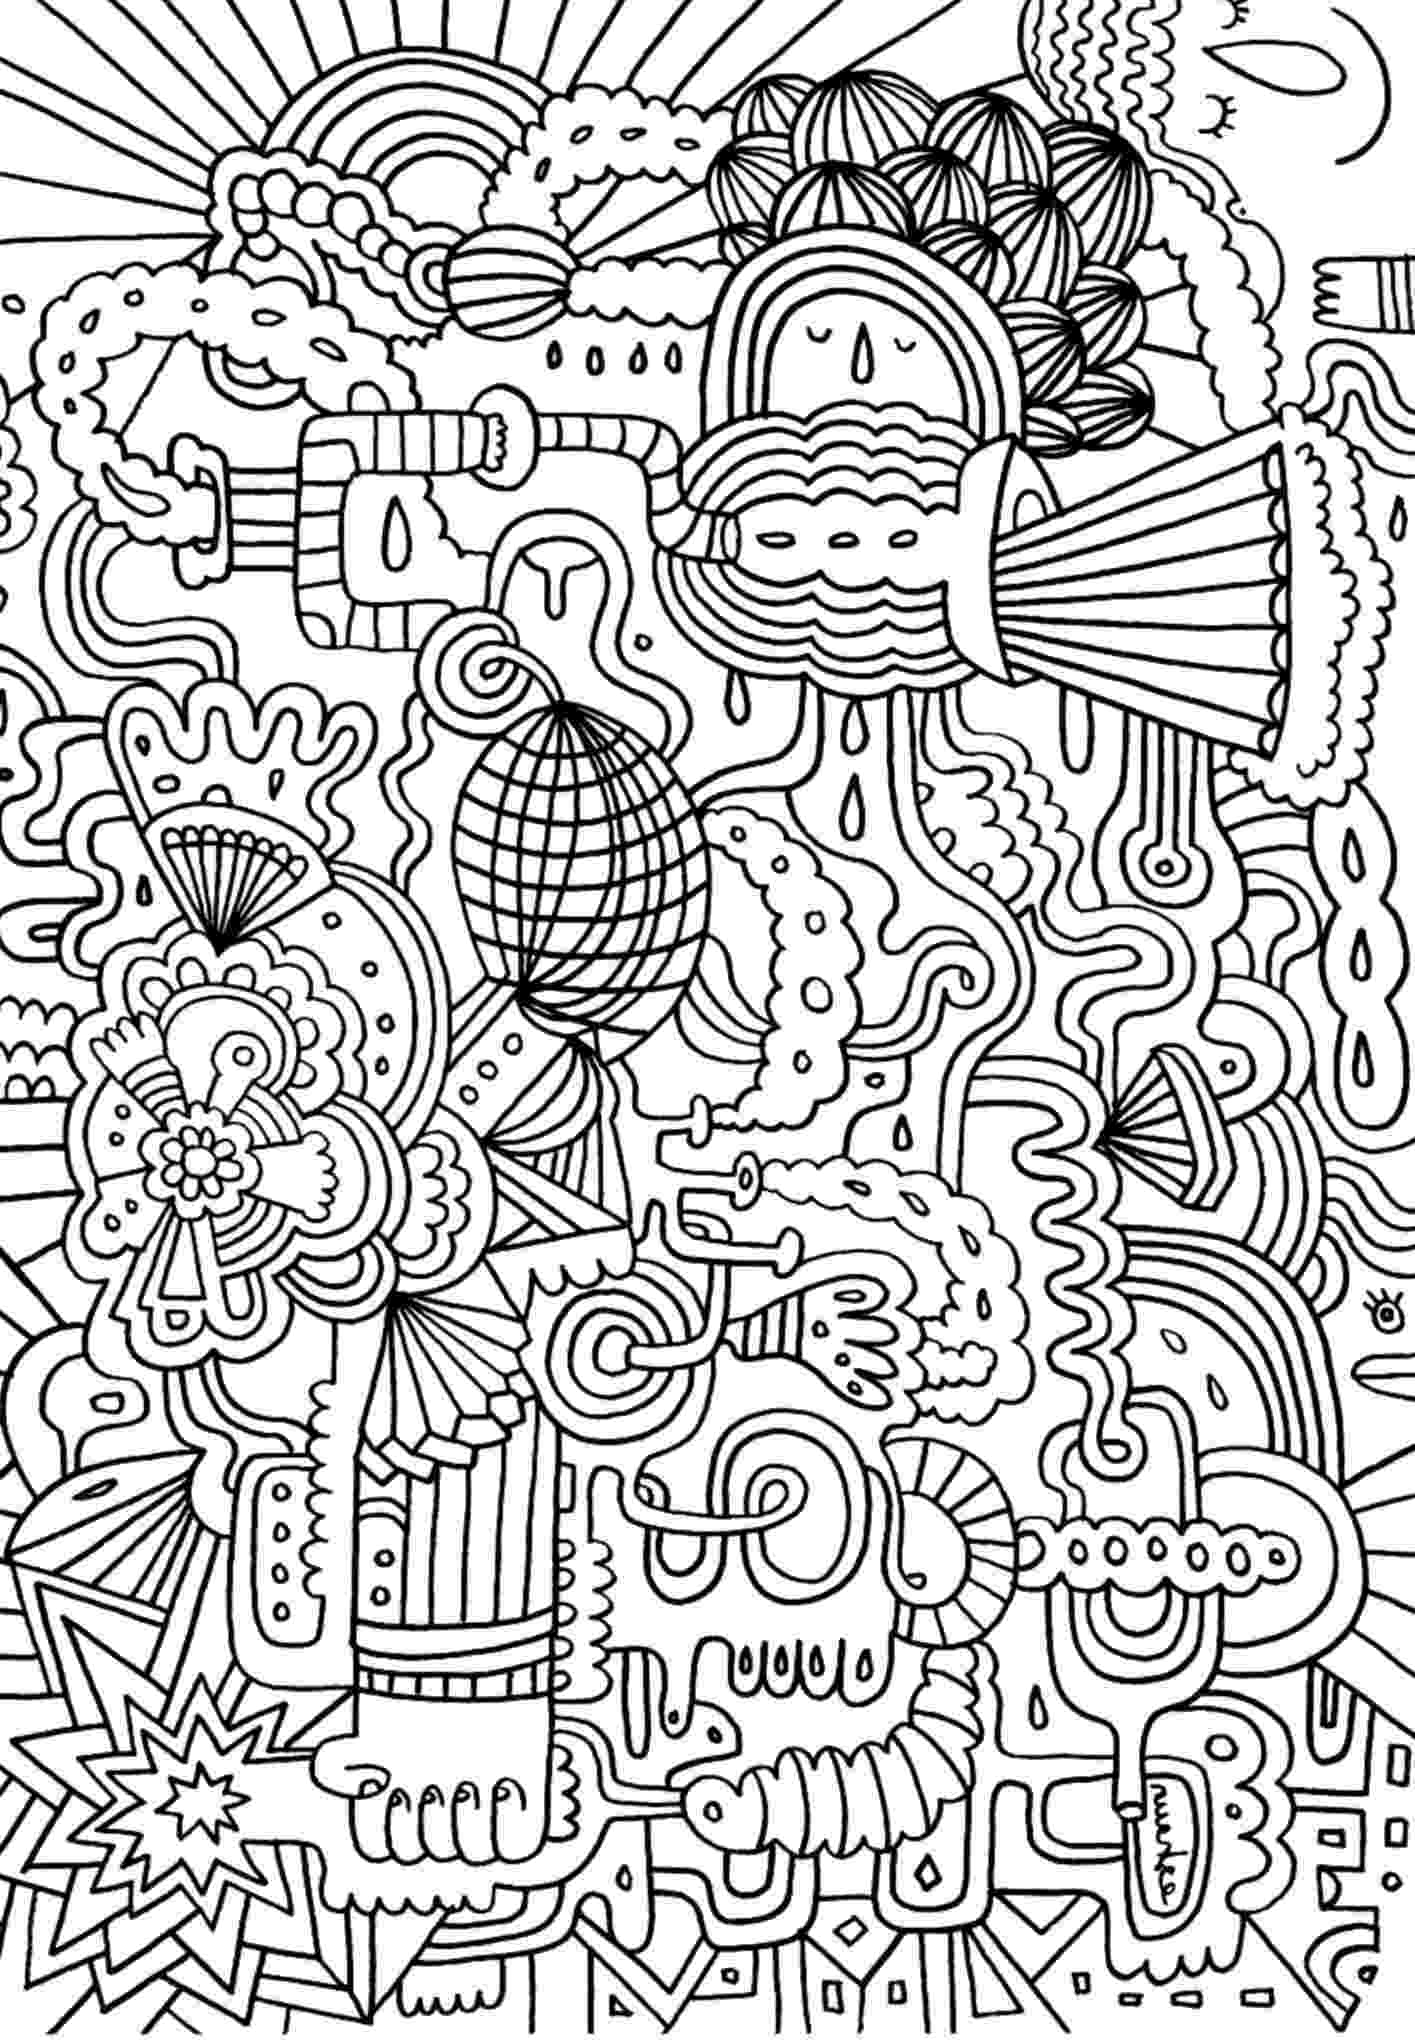 coloring pages online for adults like a boss printable adult coloring page from favoreads adults pages coloring online for